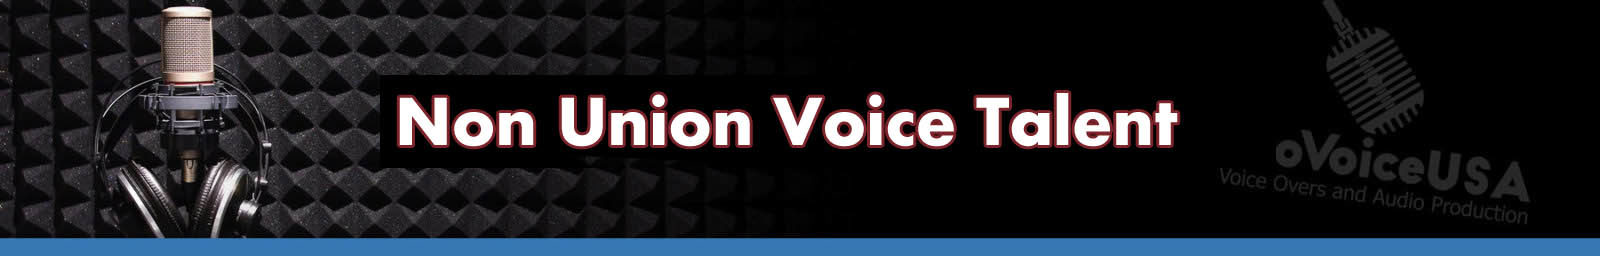 Non Union Voice Talent Header